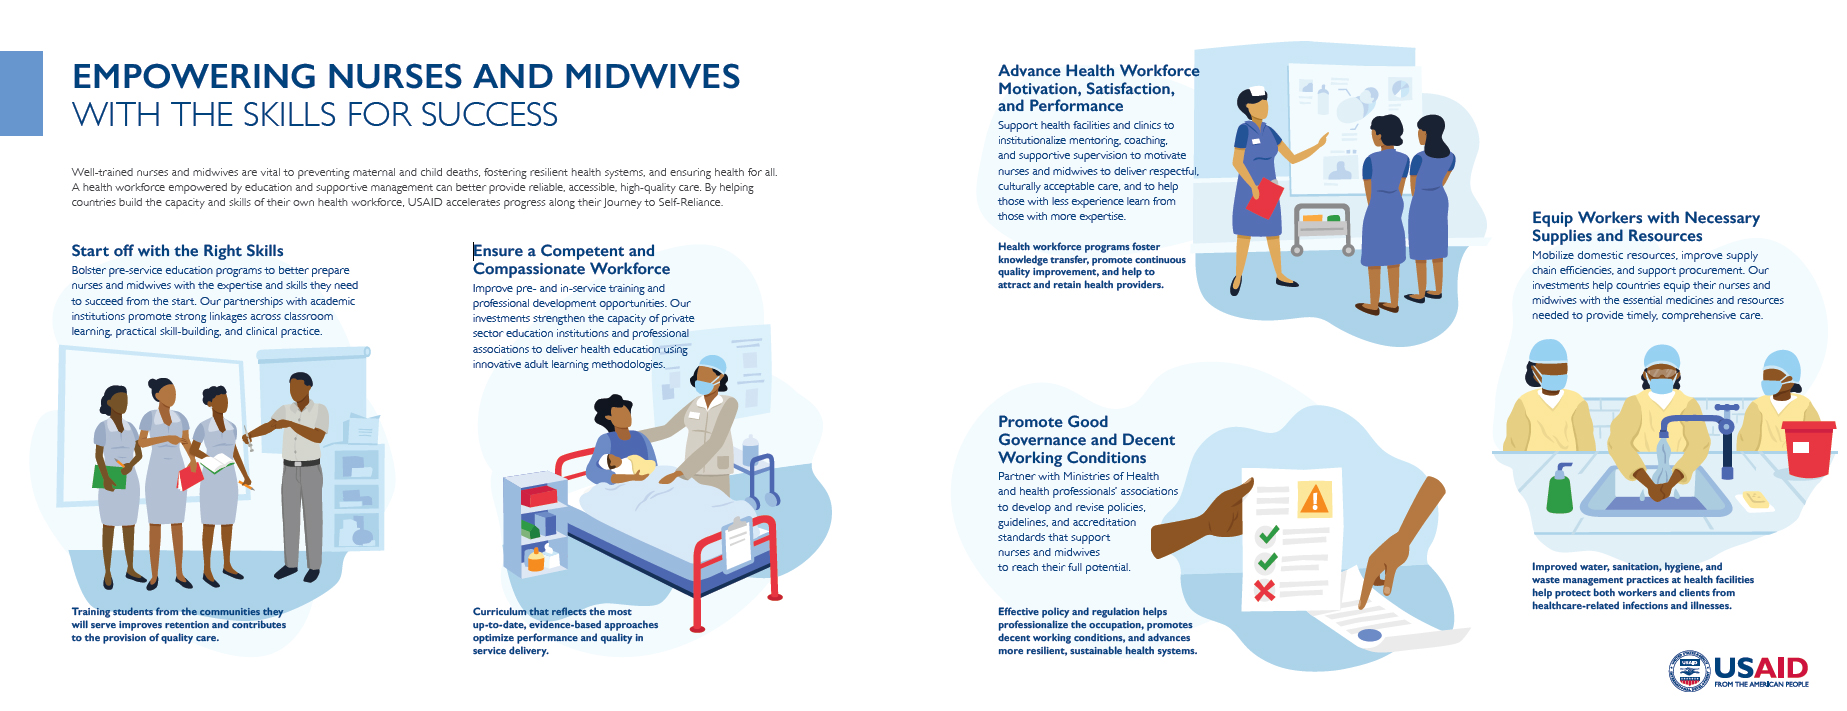 Empowering Nurses and Midwives with the Skills for Success